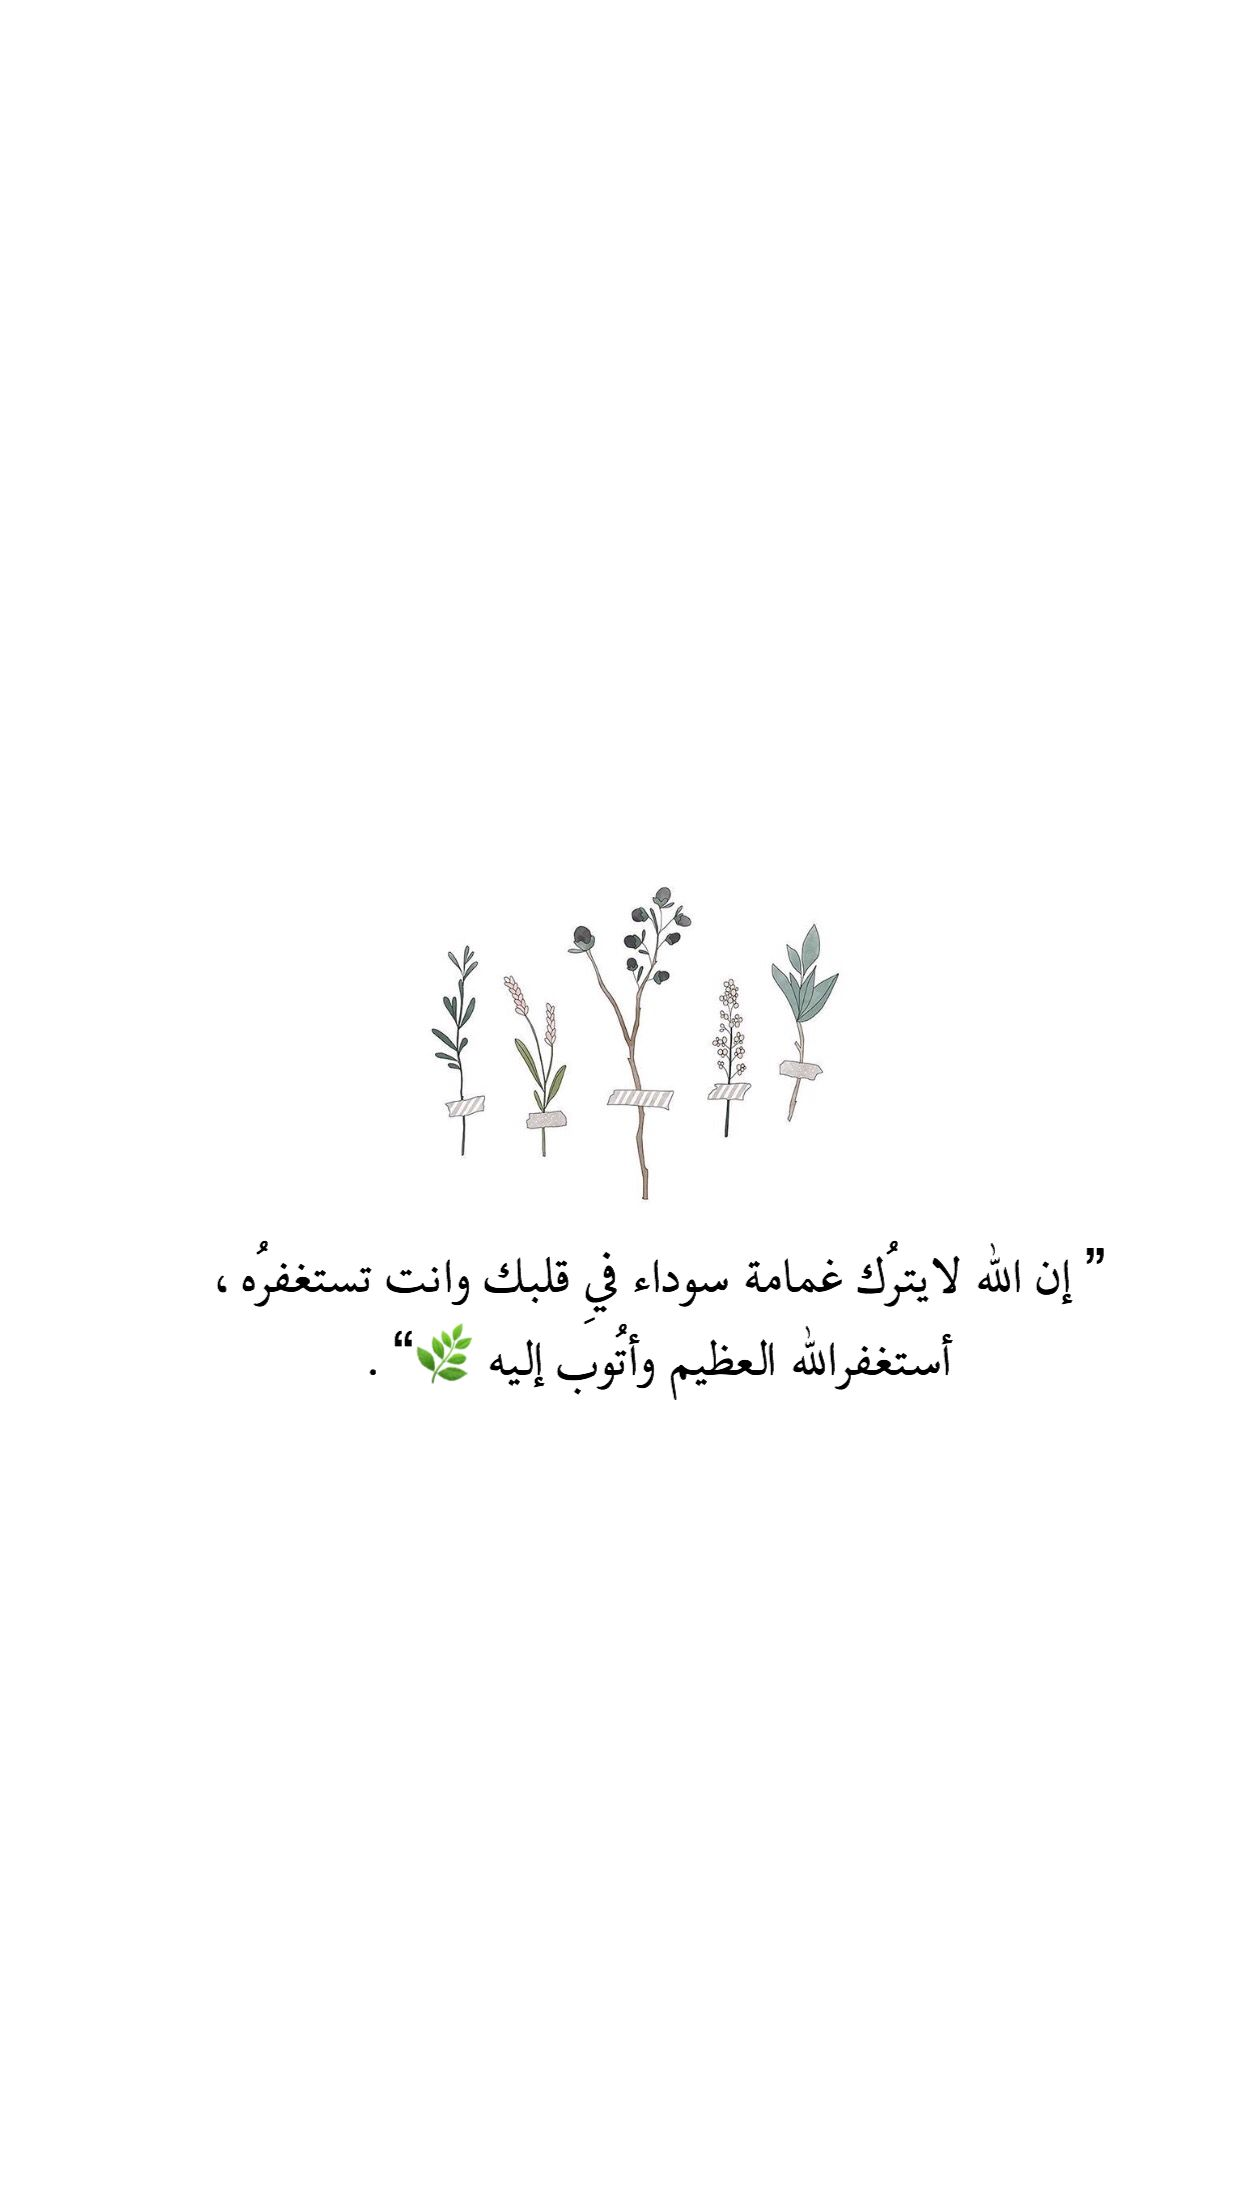 Pin By Shosho Asiri On Vision Board Quran Quotes Love Quran Quotes Islamic Inspirational Quotes